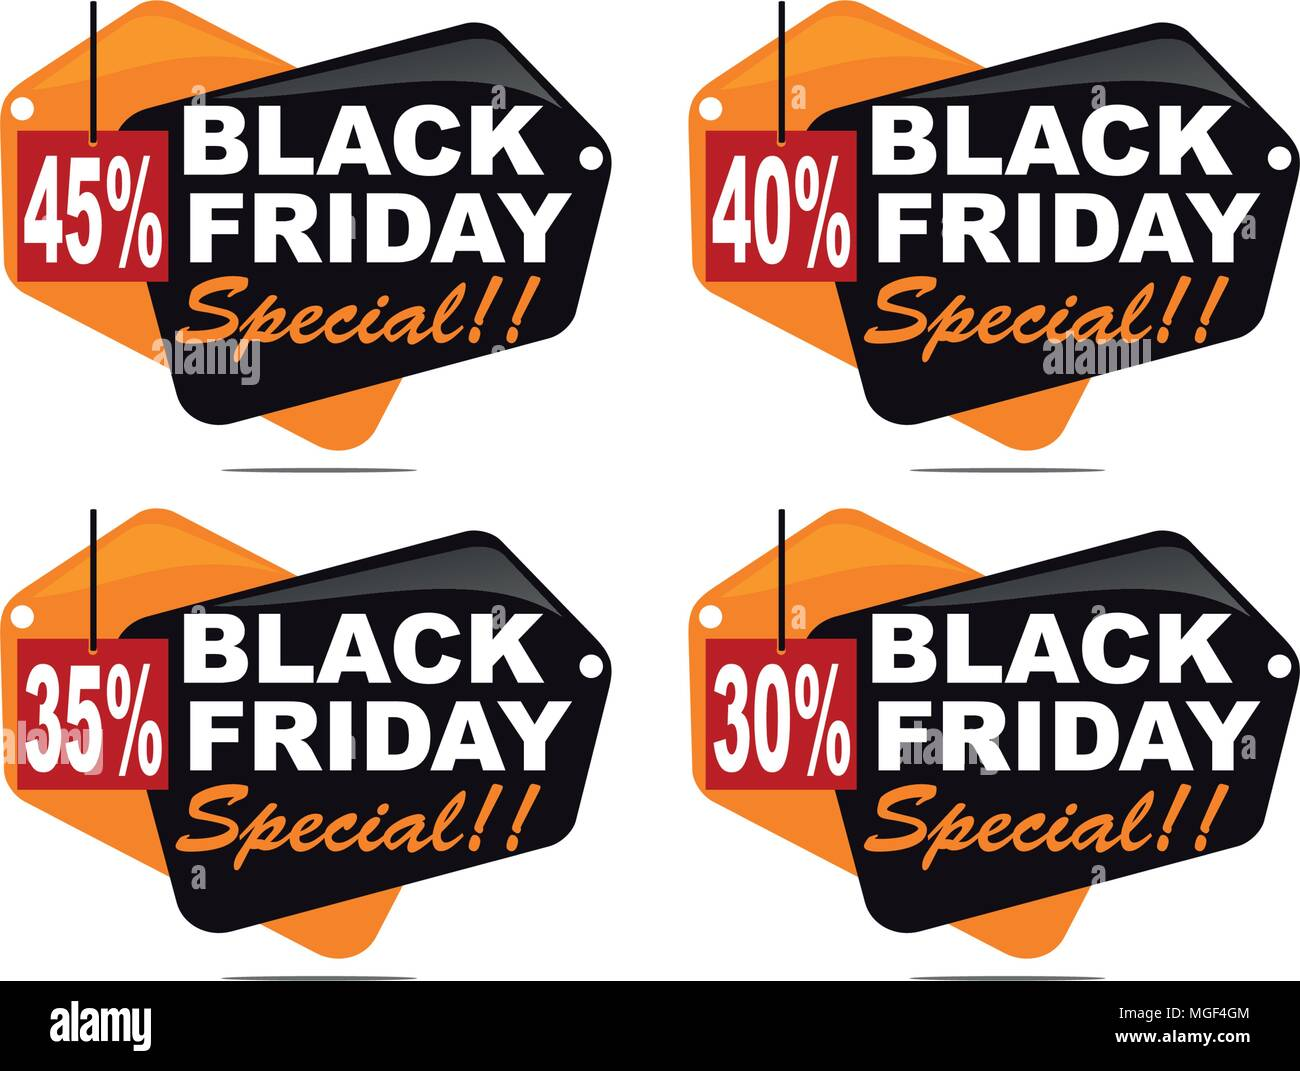 Black Friday Discount Template Set - Stock Vector